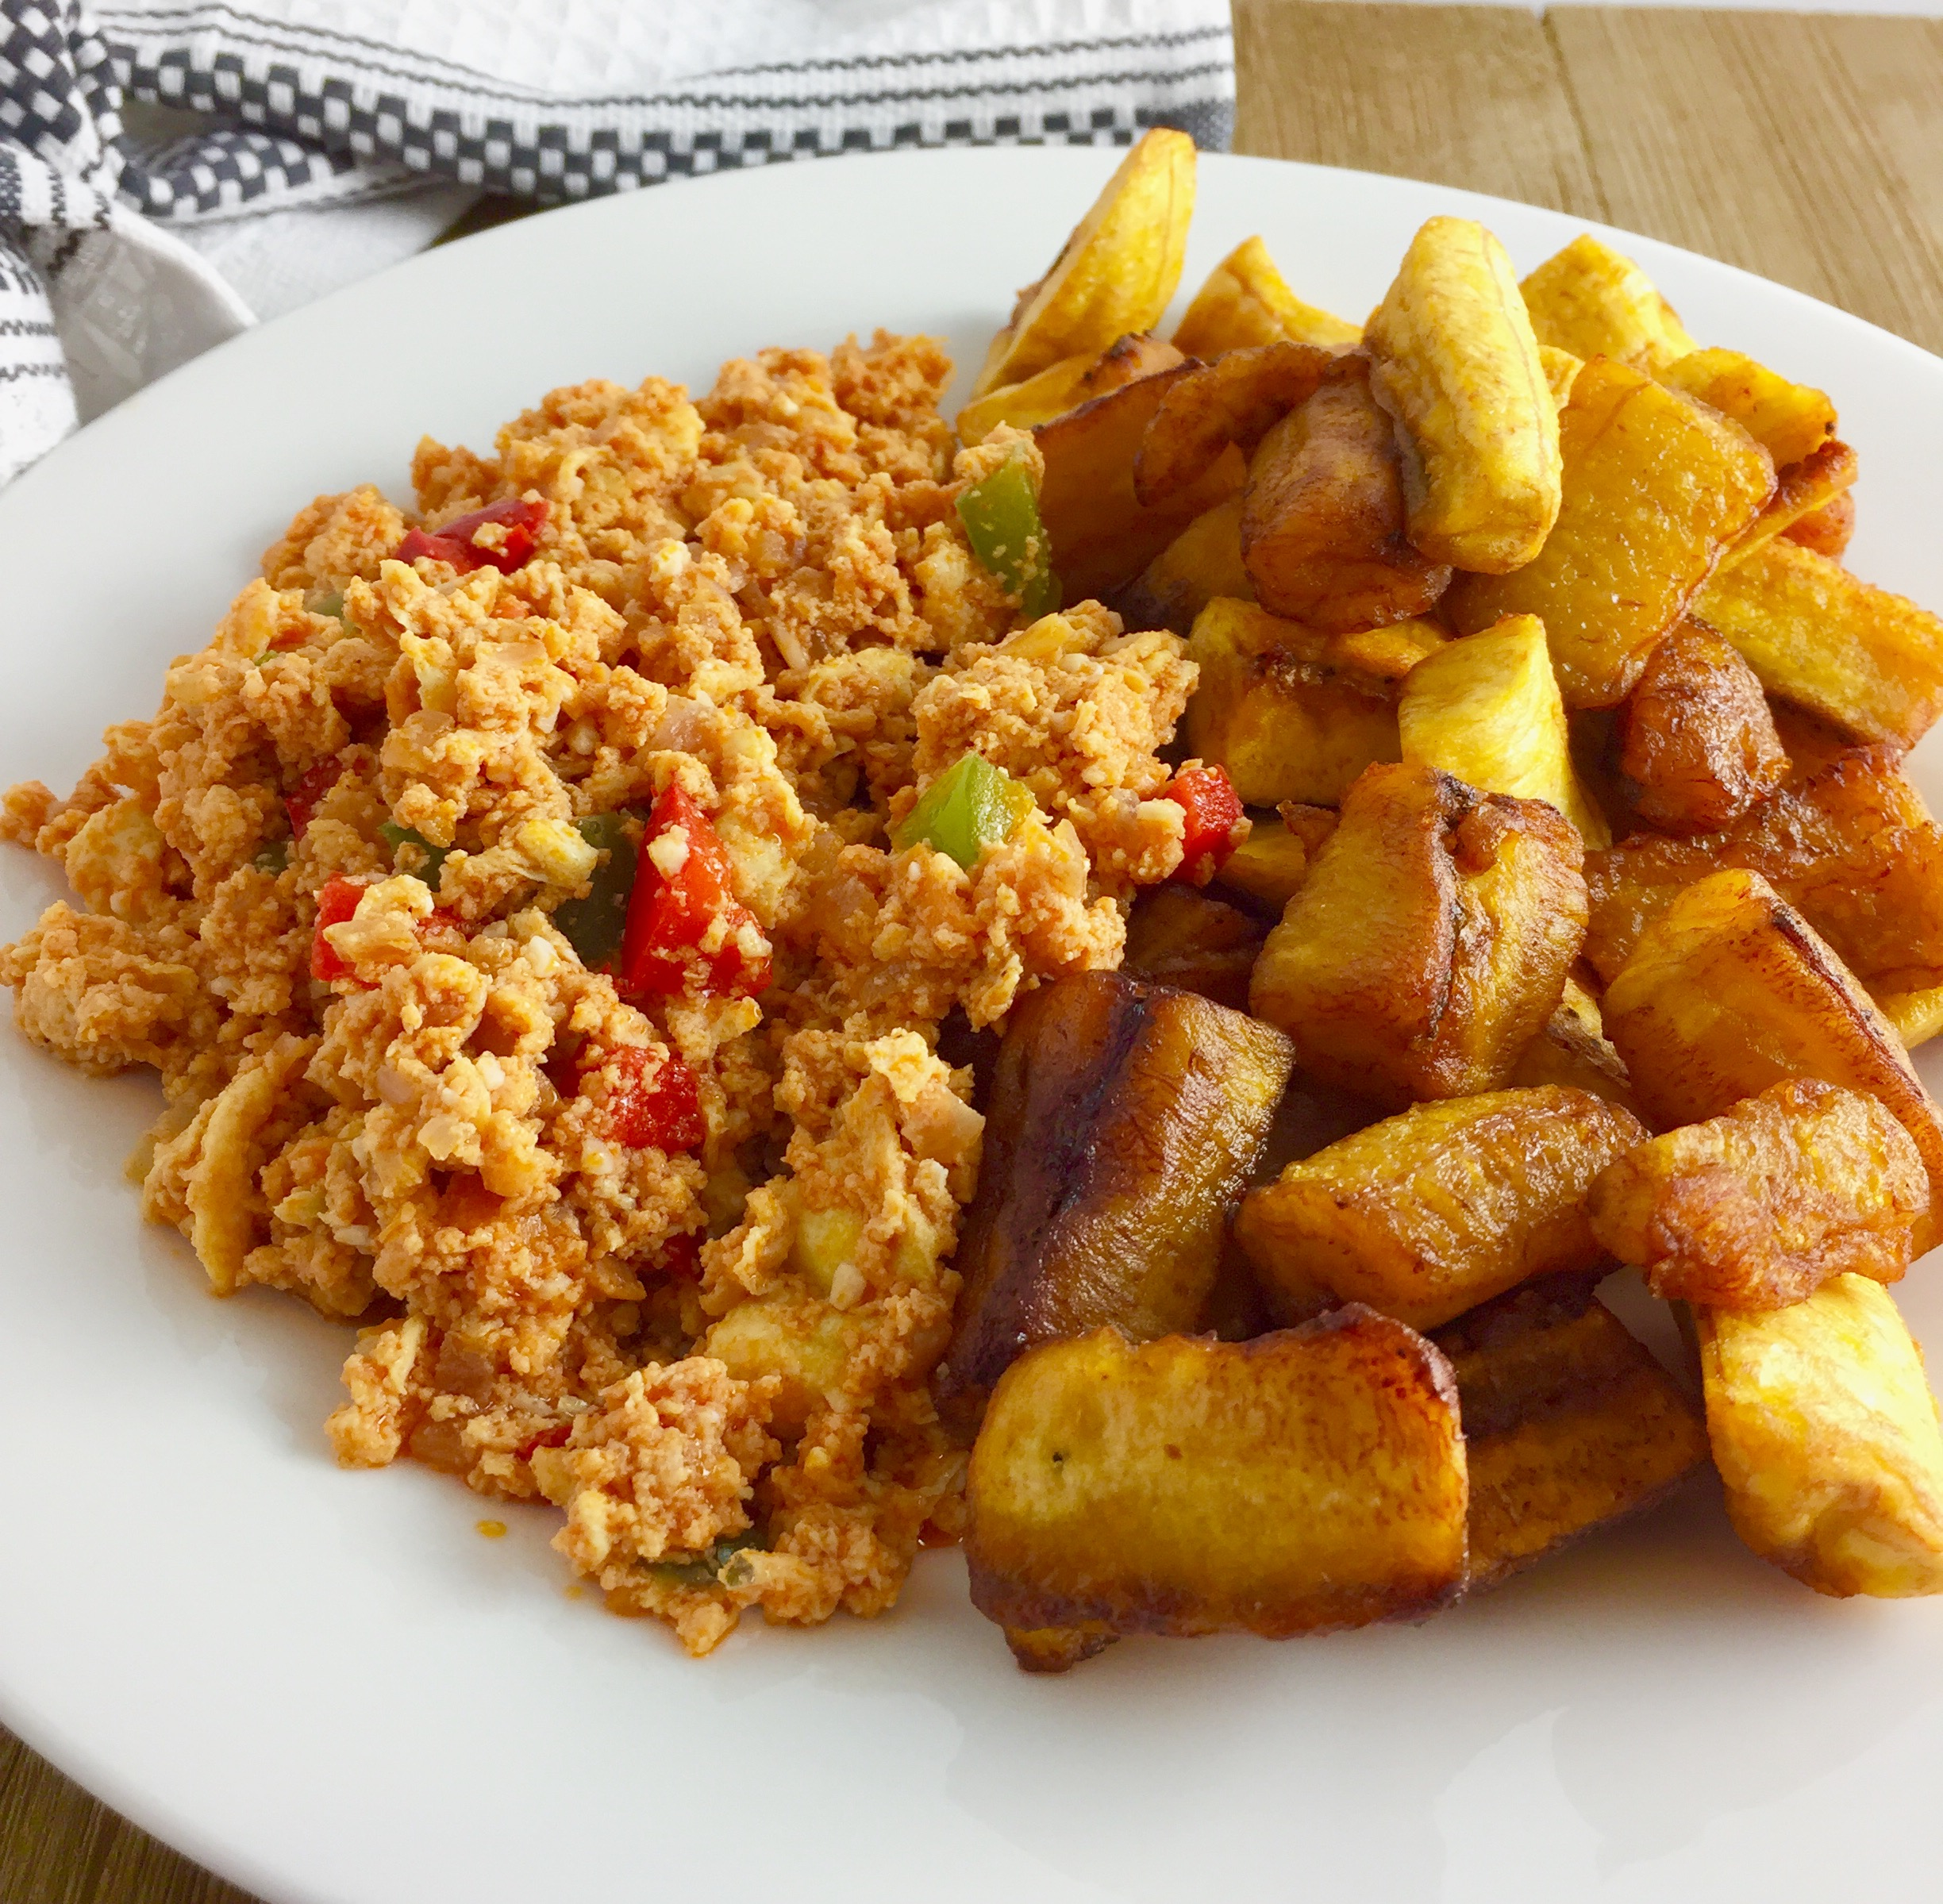 Plantain and Egg stew